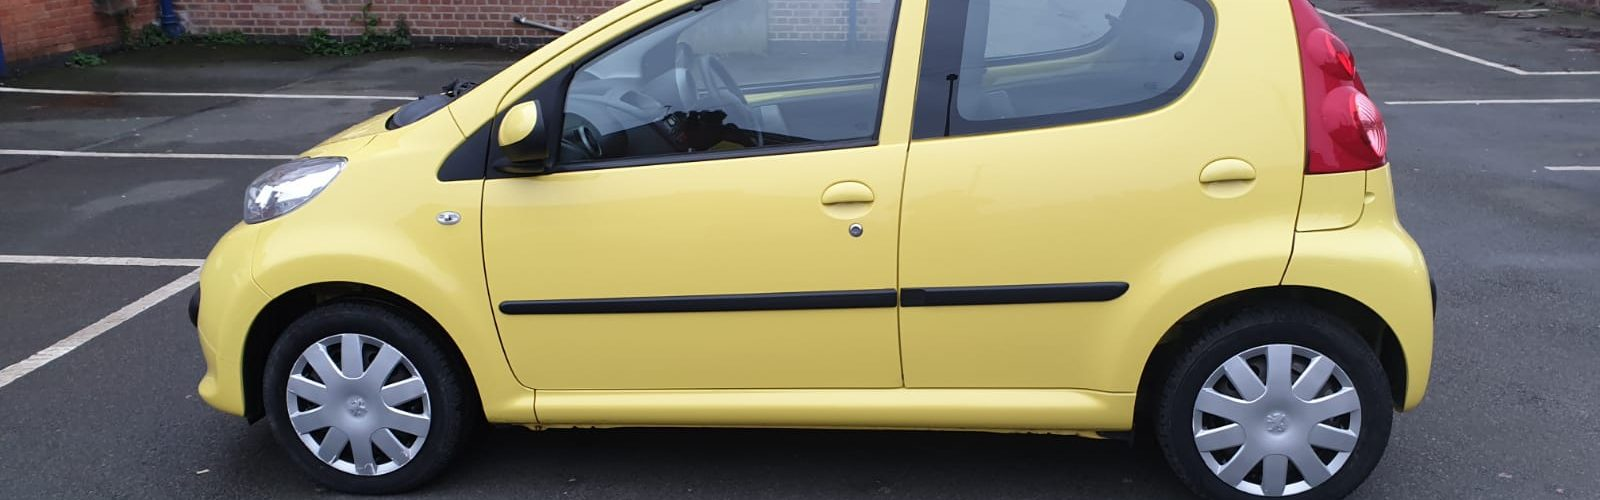 For Sale: Yellow Peugeot 107 - side view